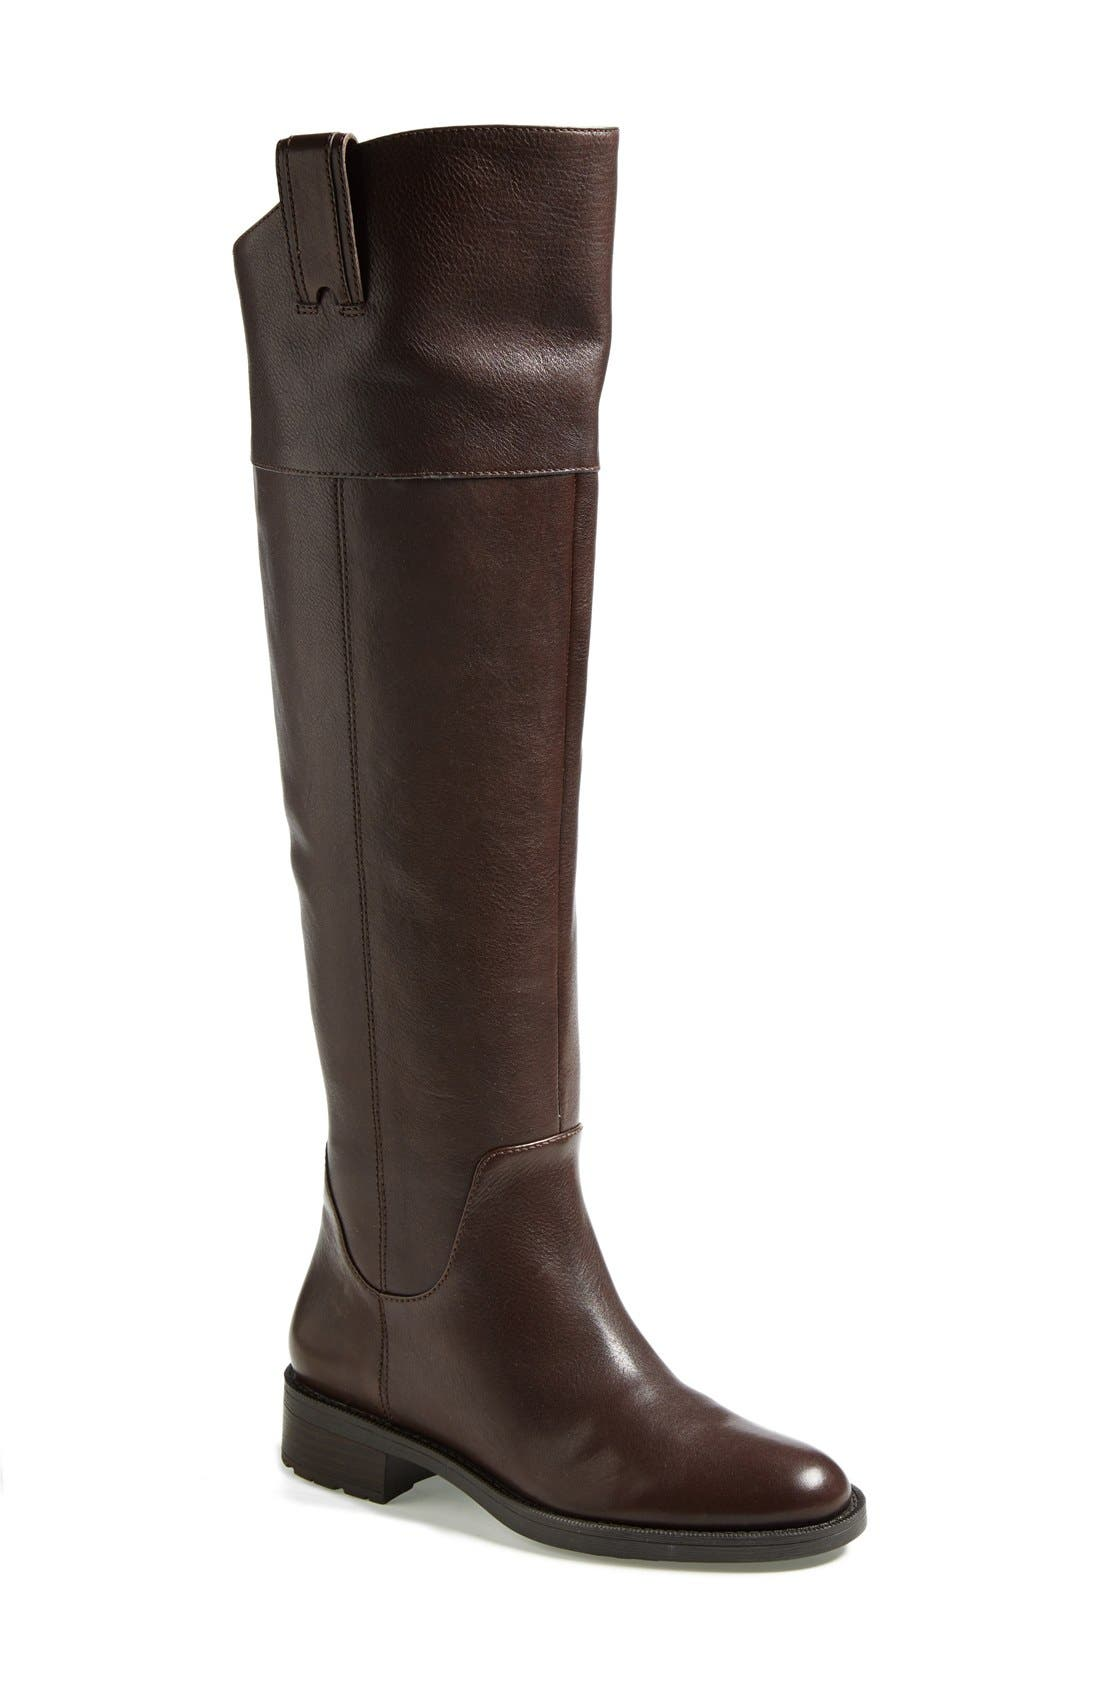 Alternate Image 1 Selected - Enzo Angiolini 'Holdyn' Over the Knee Boot (Women)